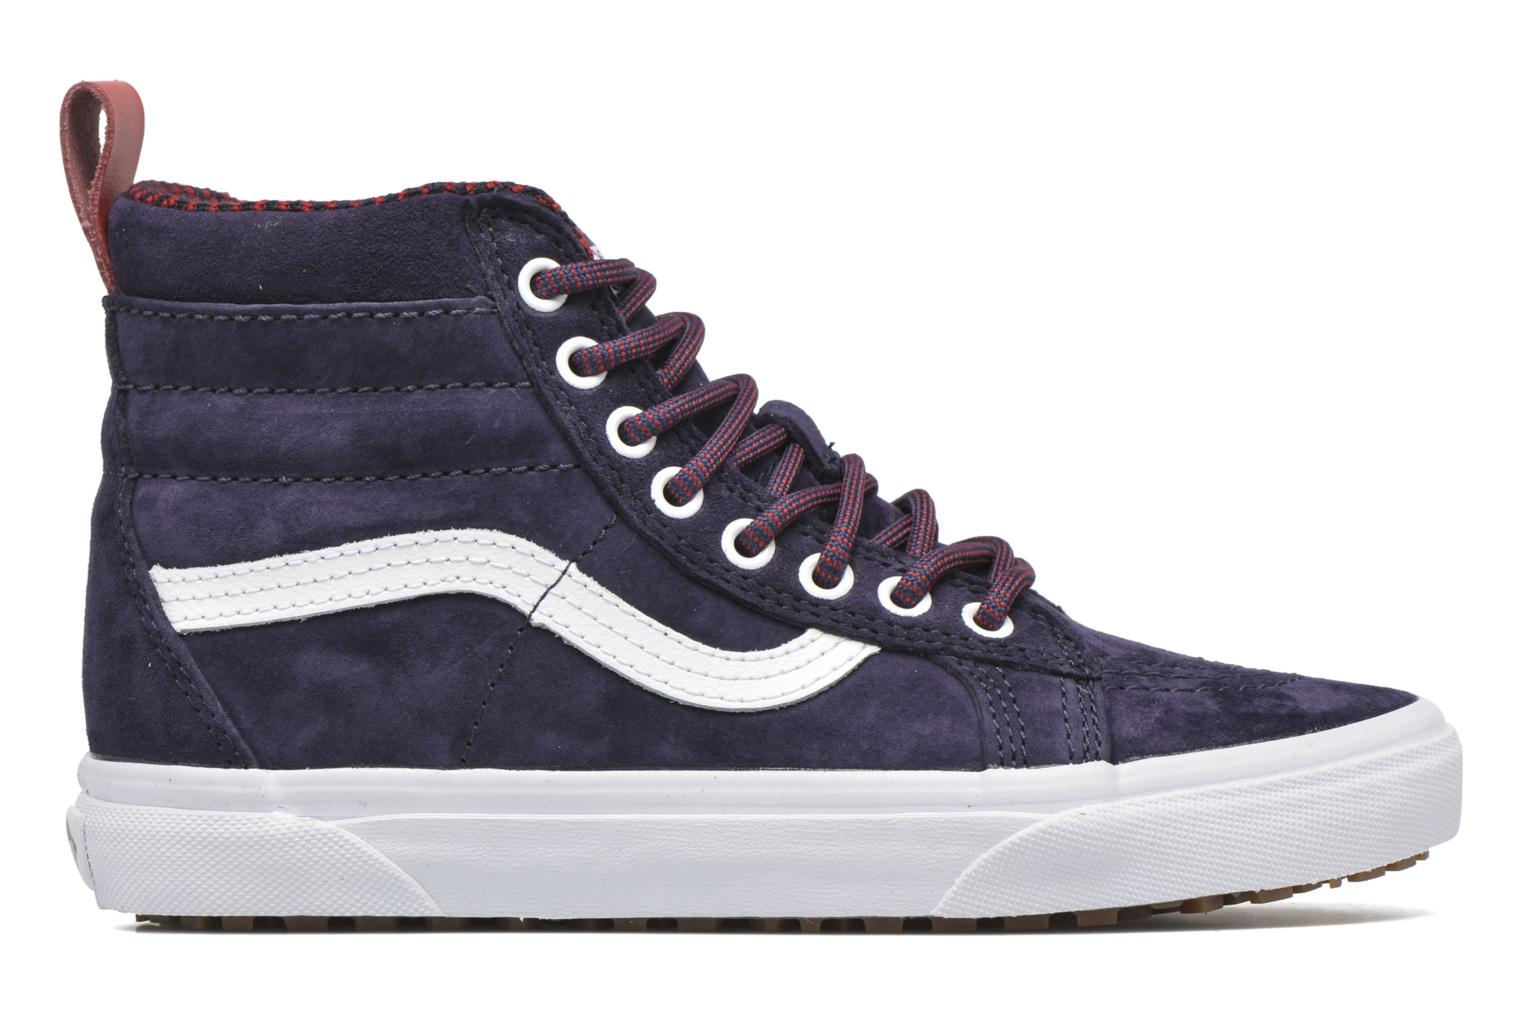 SK8-Hi MTE W (Mte) Evening Blue/True White